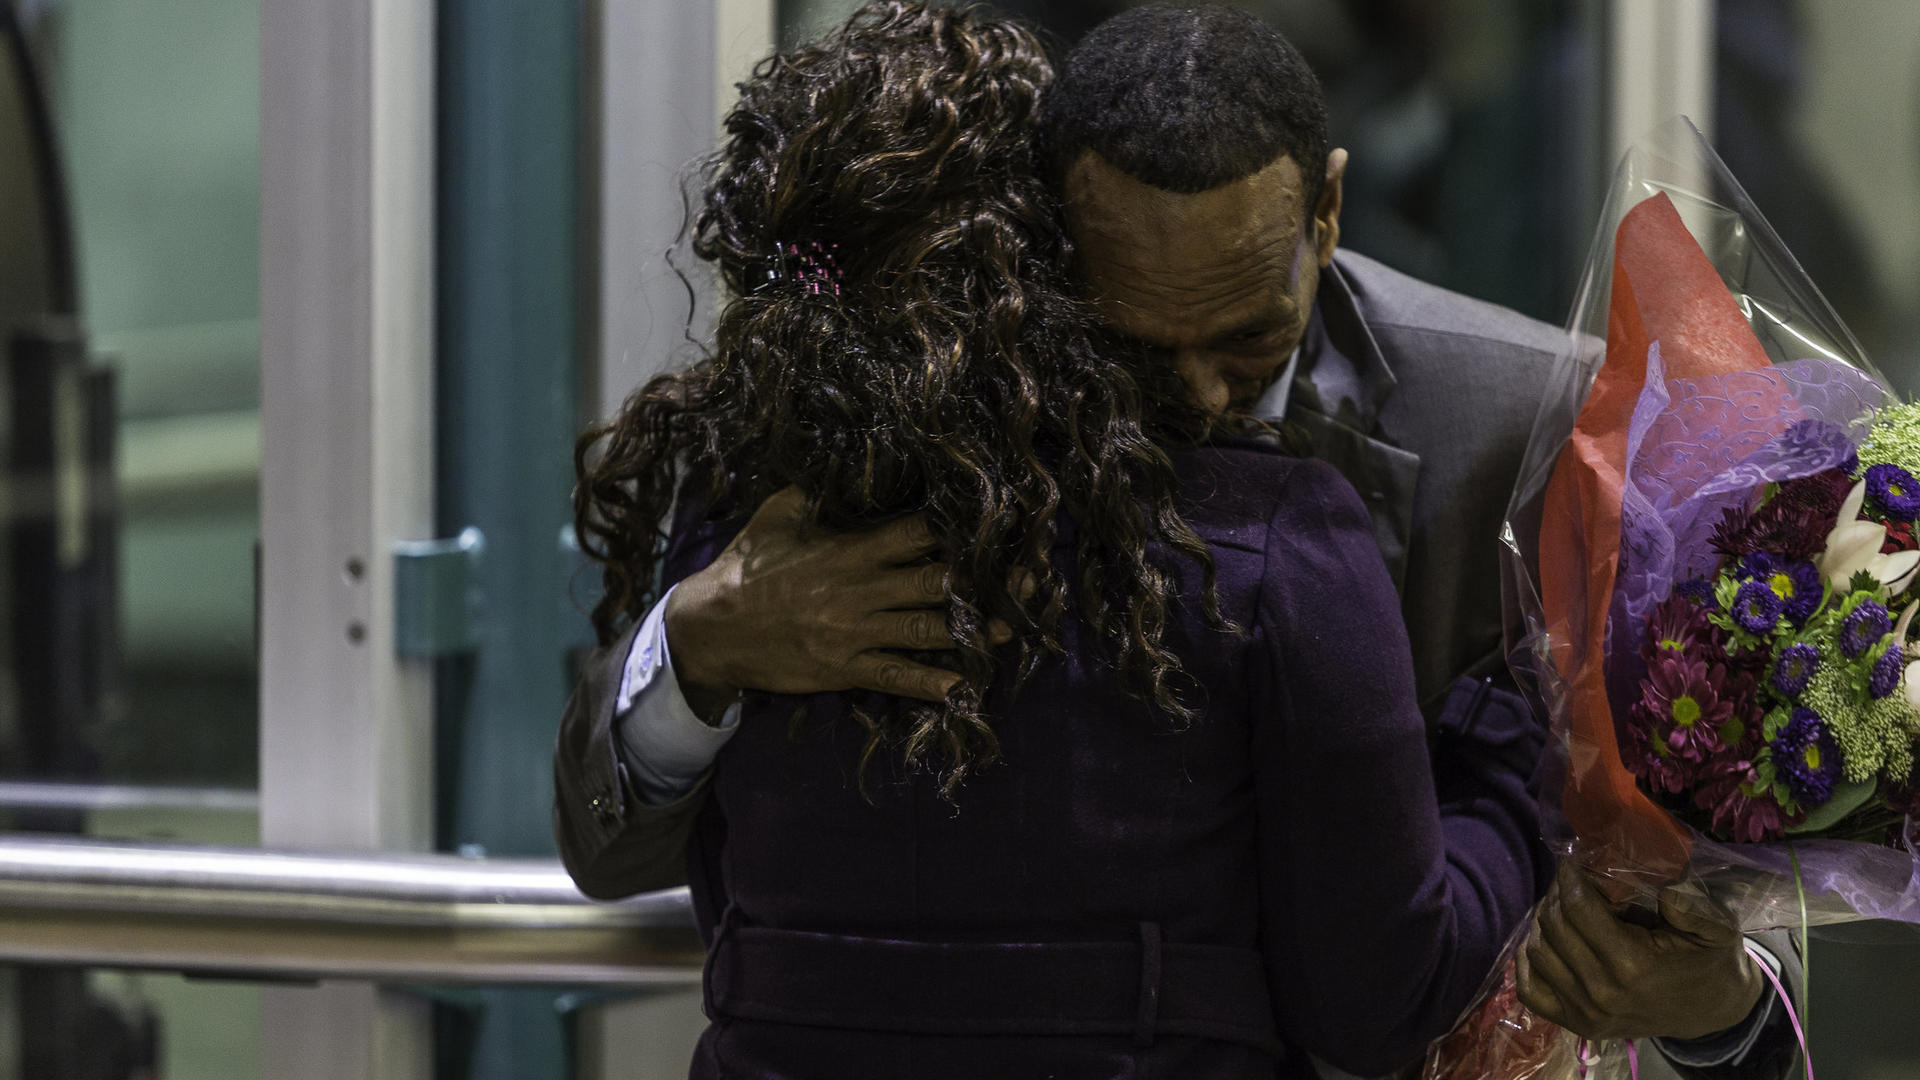 A father and daughter, Somali refugees, hug after being reunited at SeaTac airport